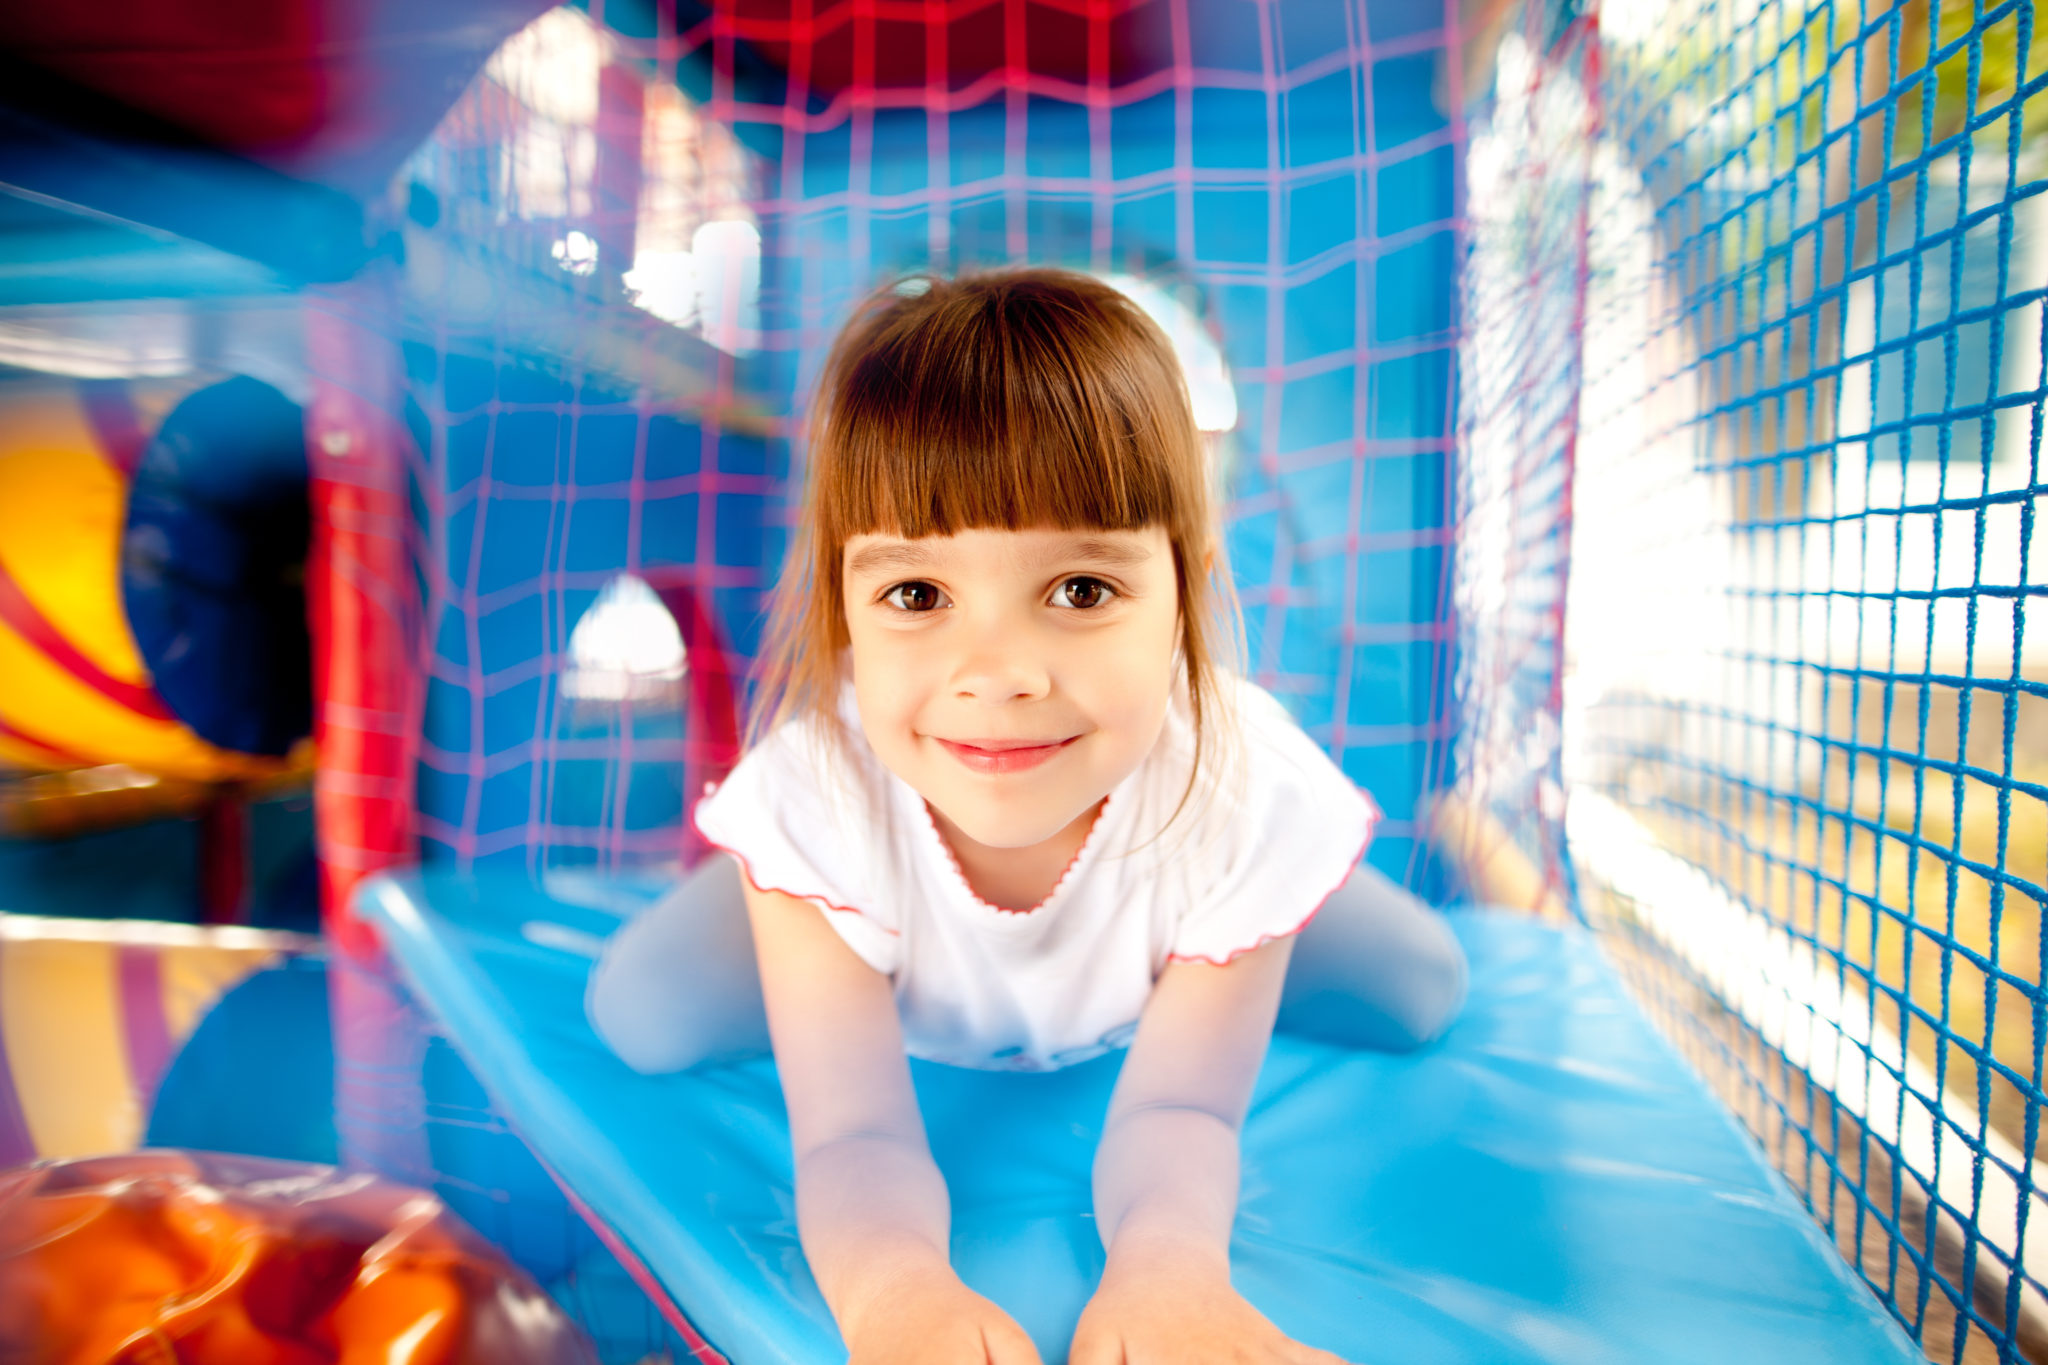 Colorful inflatables playground where girl with brown hair is smiling and laying on blue surface